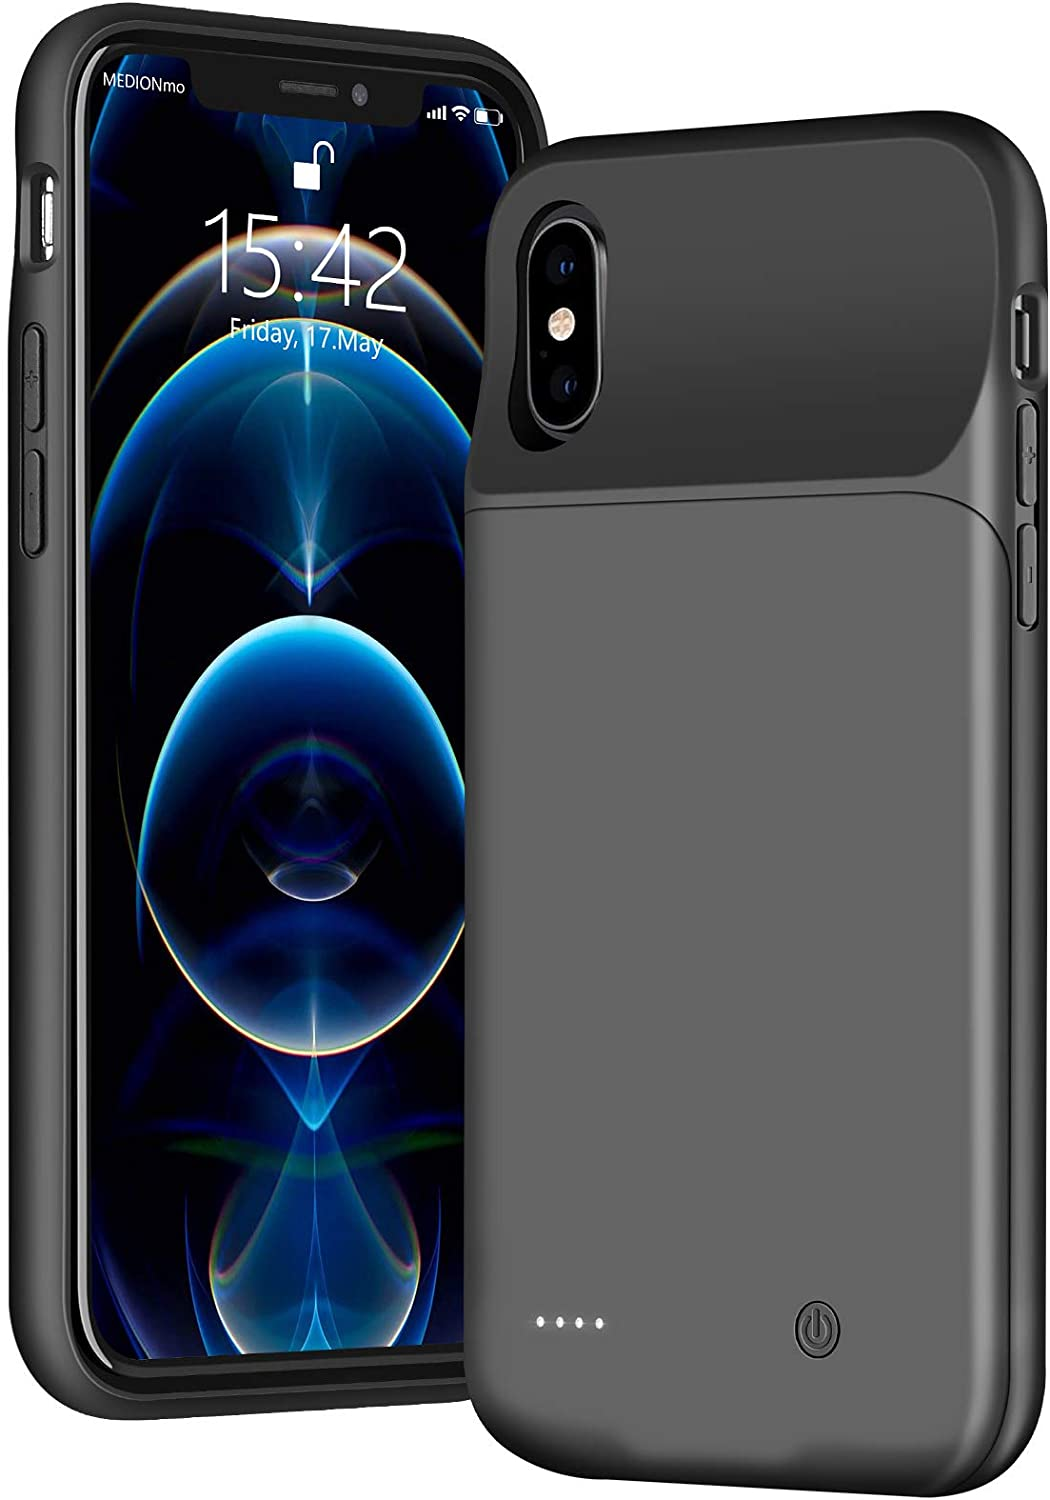 Specell Battery case for iPhone X/XS/10, 3200mAh Slim Portable Charger Case Protective Rechargeable Battery Pack Charging Case for iPhone X/XS/10(5.8 inch)